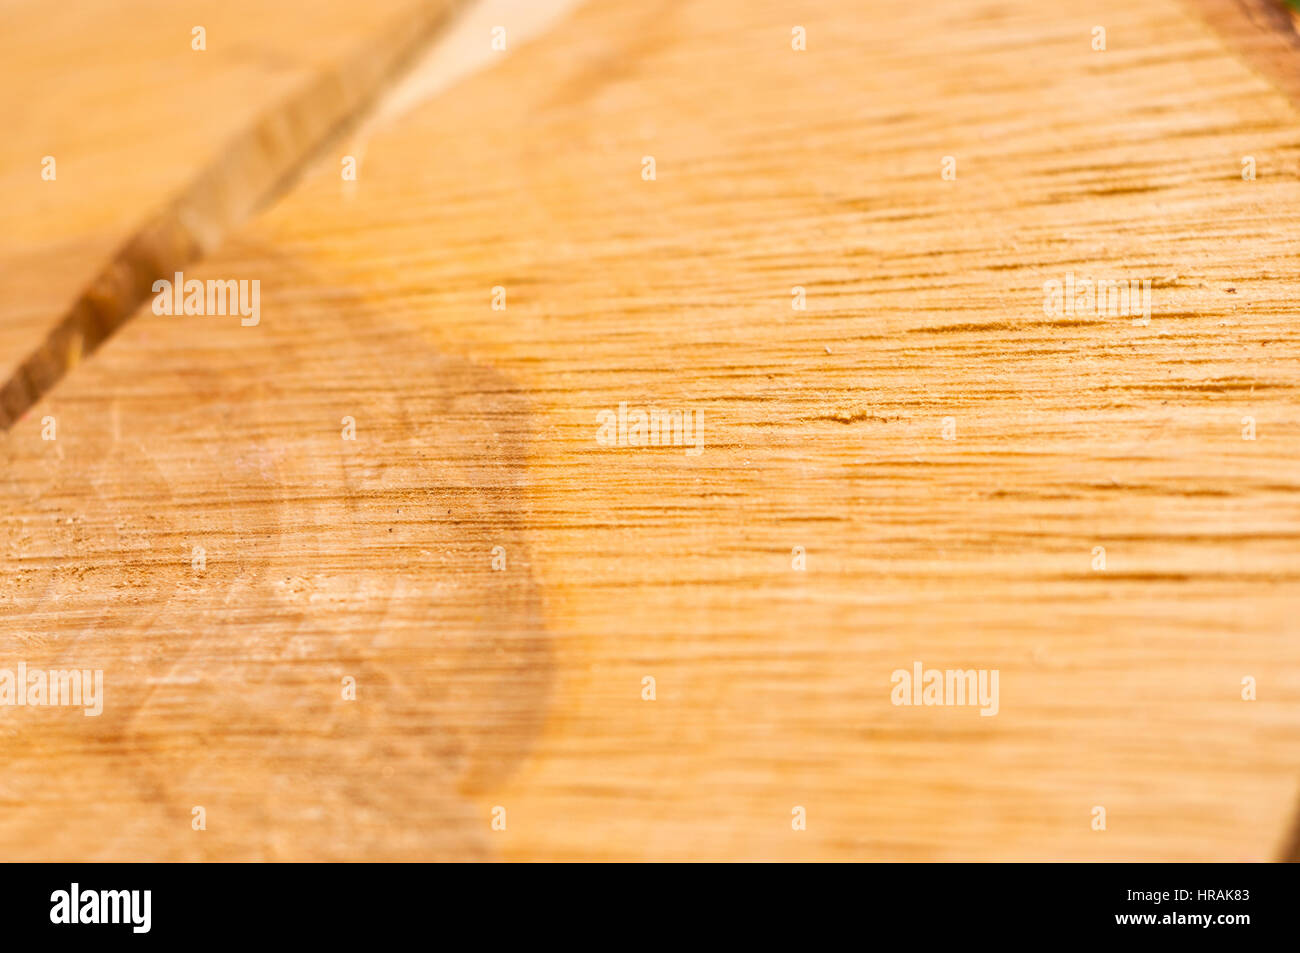 Crack on a tree stump, wooden texture - Stock Image